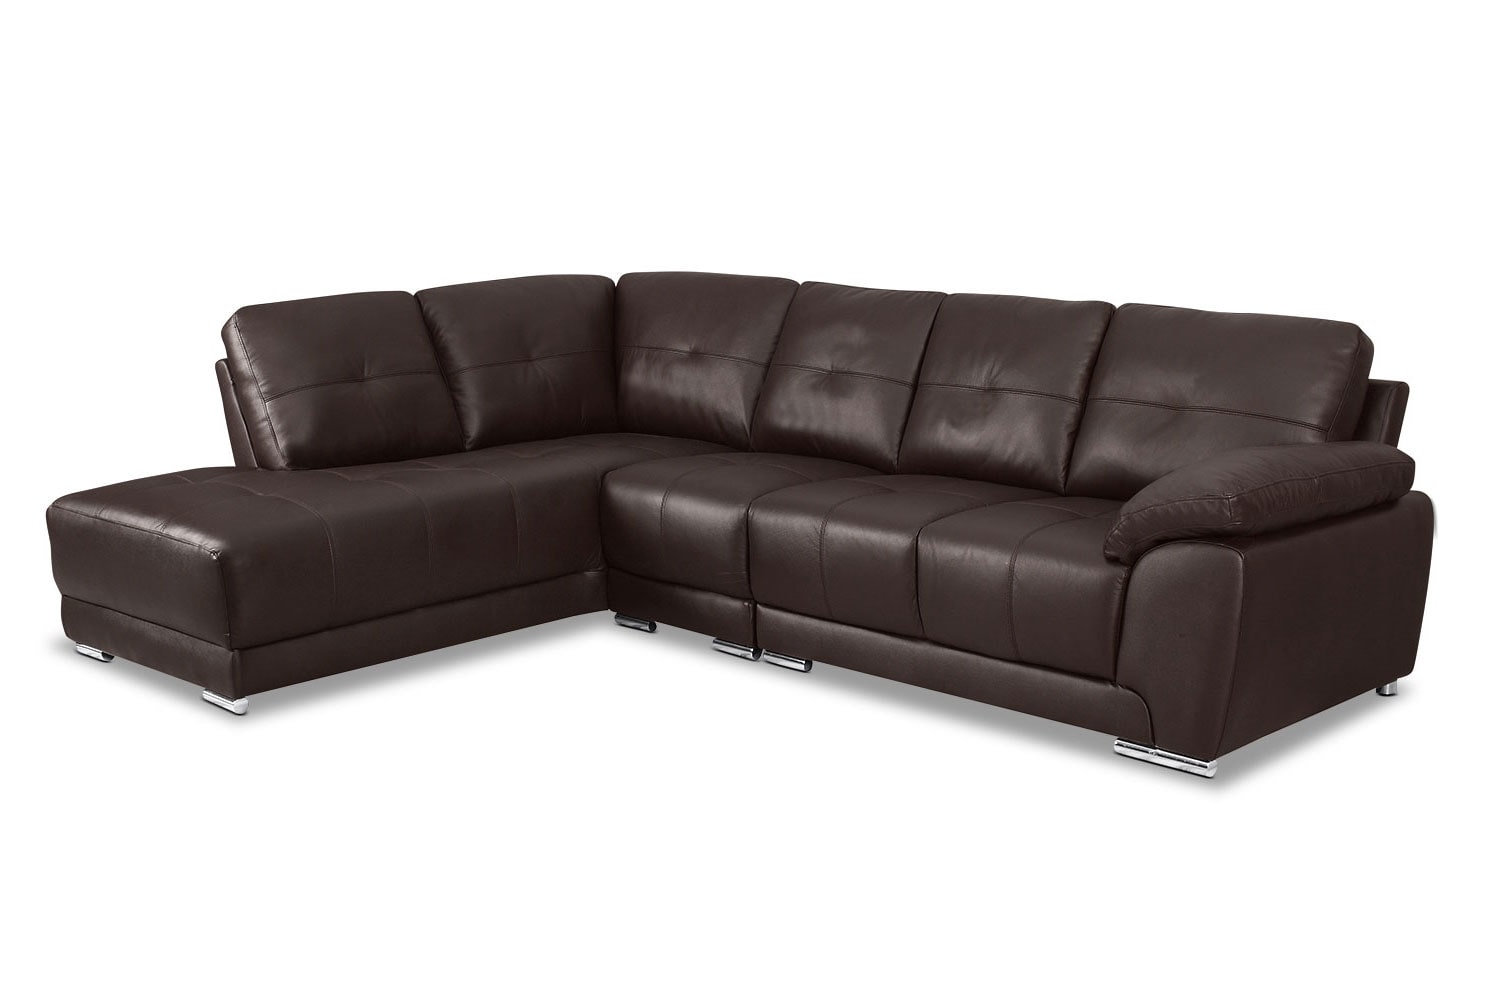 rothwell 3 piece left facing chaise sectional brown